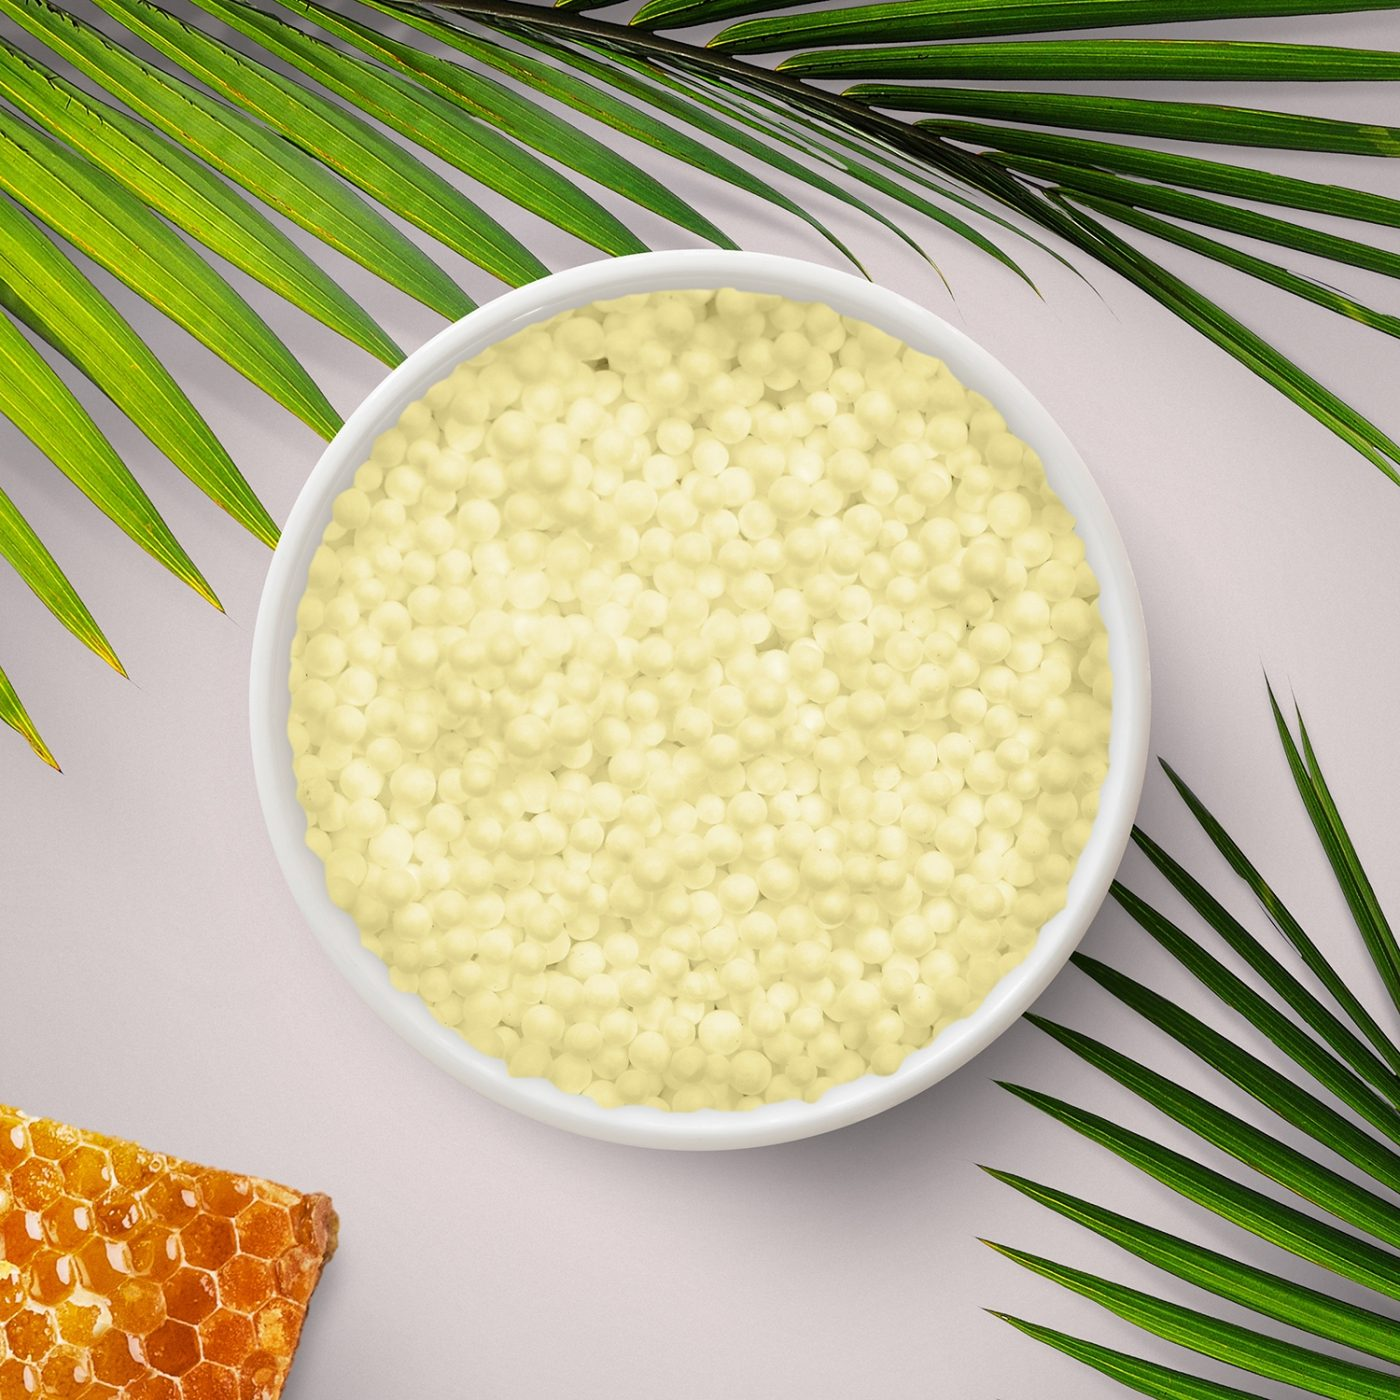 Creamy wax beads with honeycomb from KahlWax, stocked and sold by H Foster in Leeds.